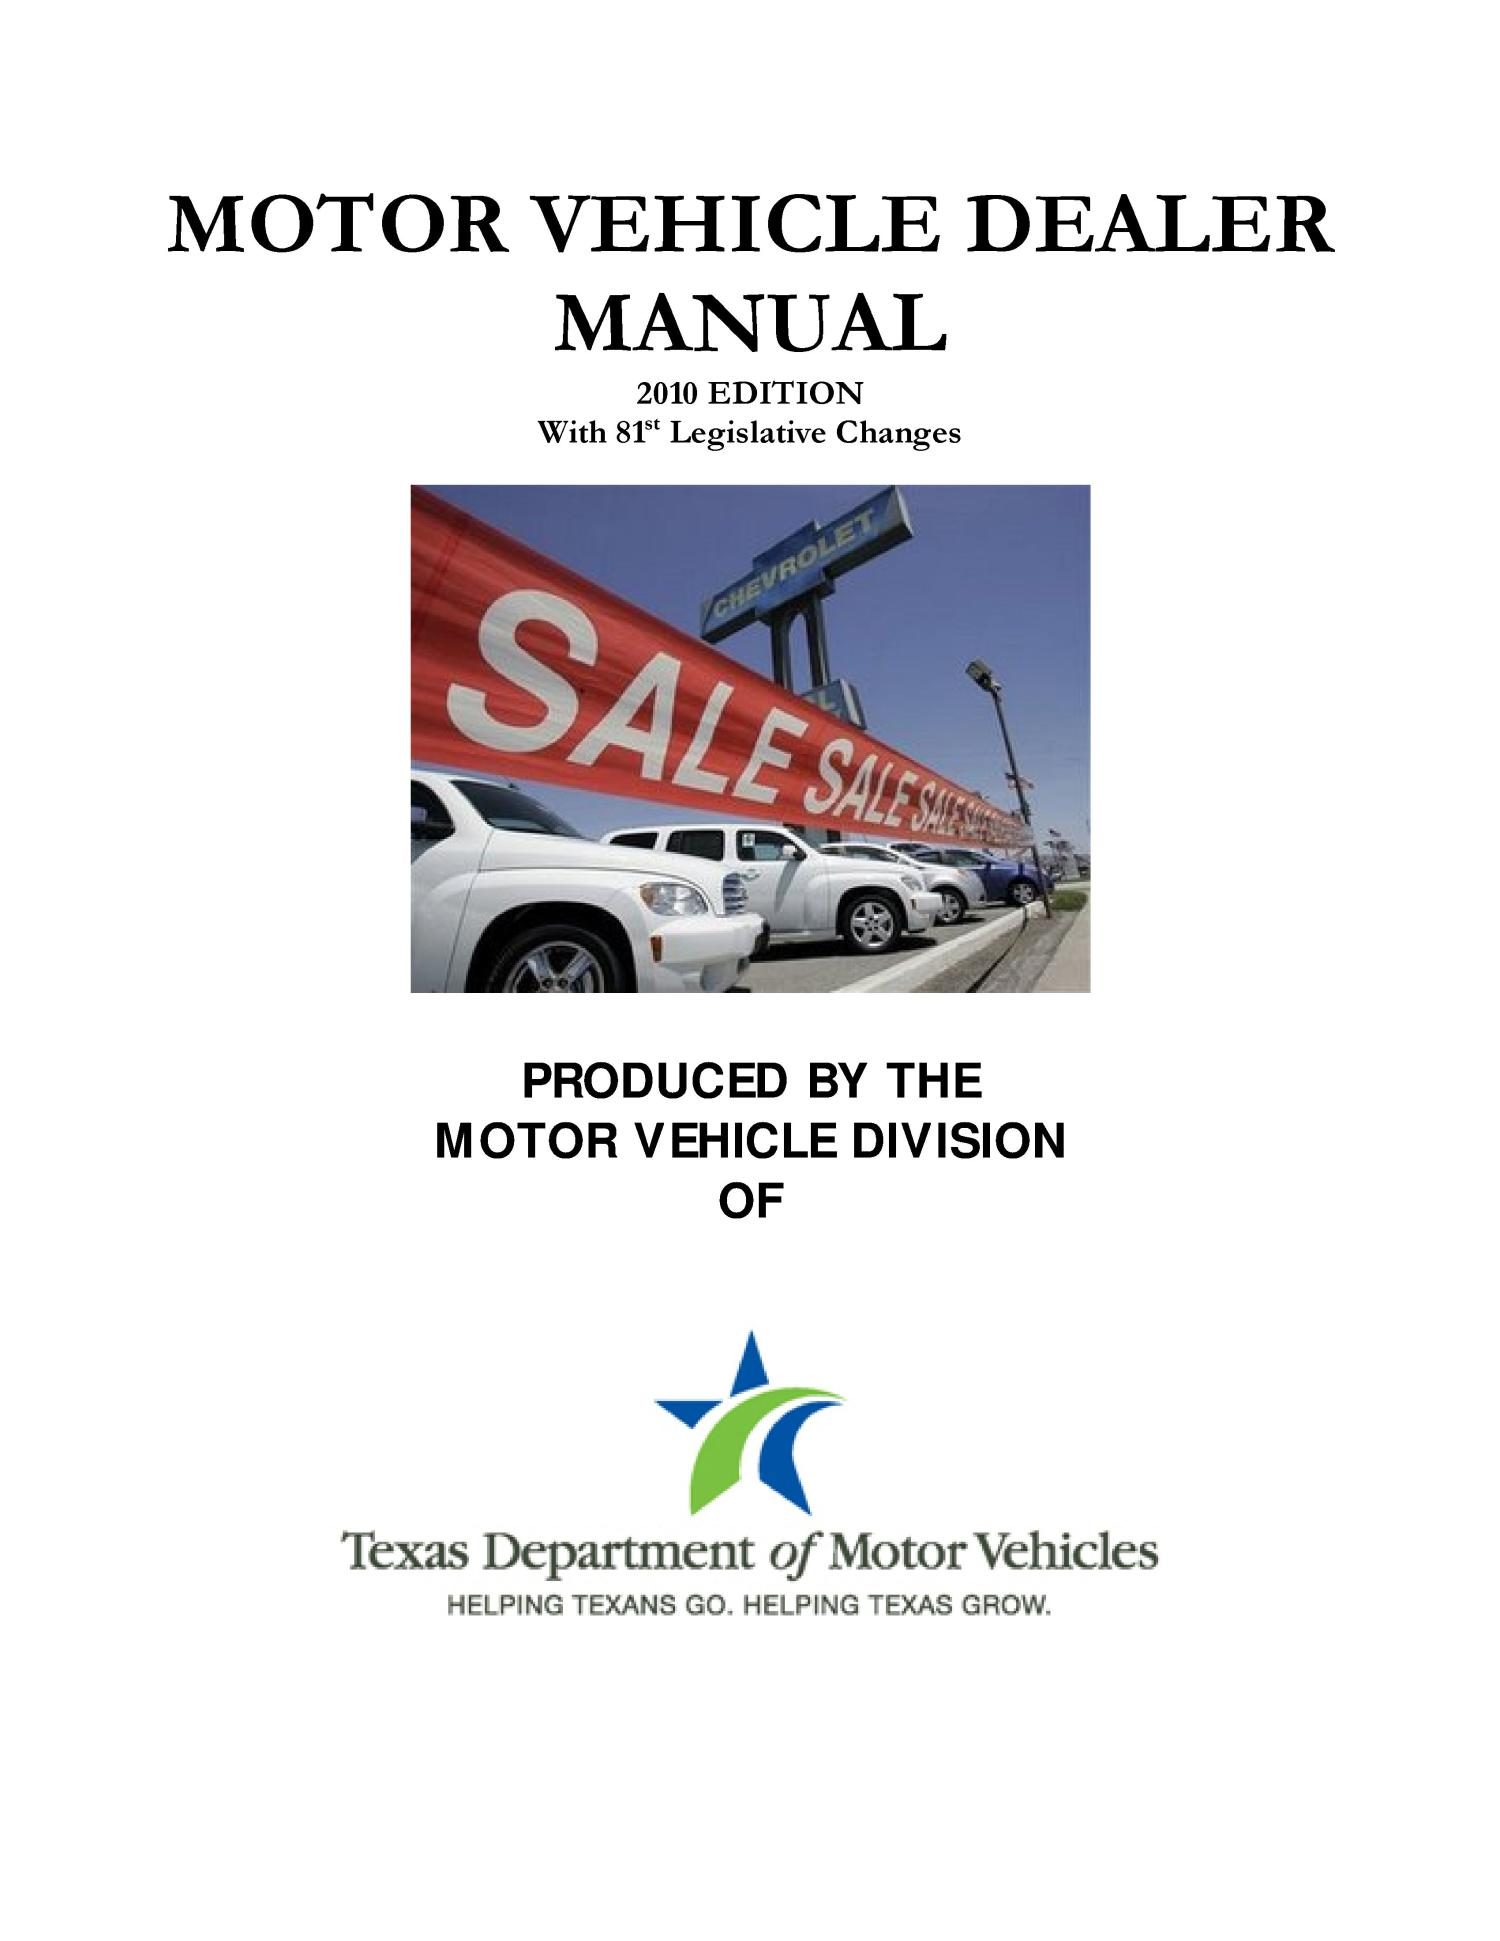 Motor vehicle dealer manual 2010 edition with the 81st for Texas motor vehicle record